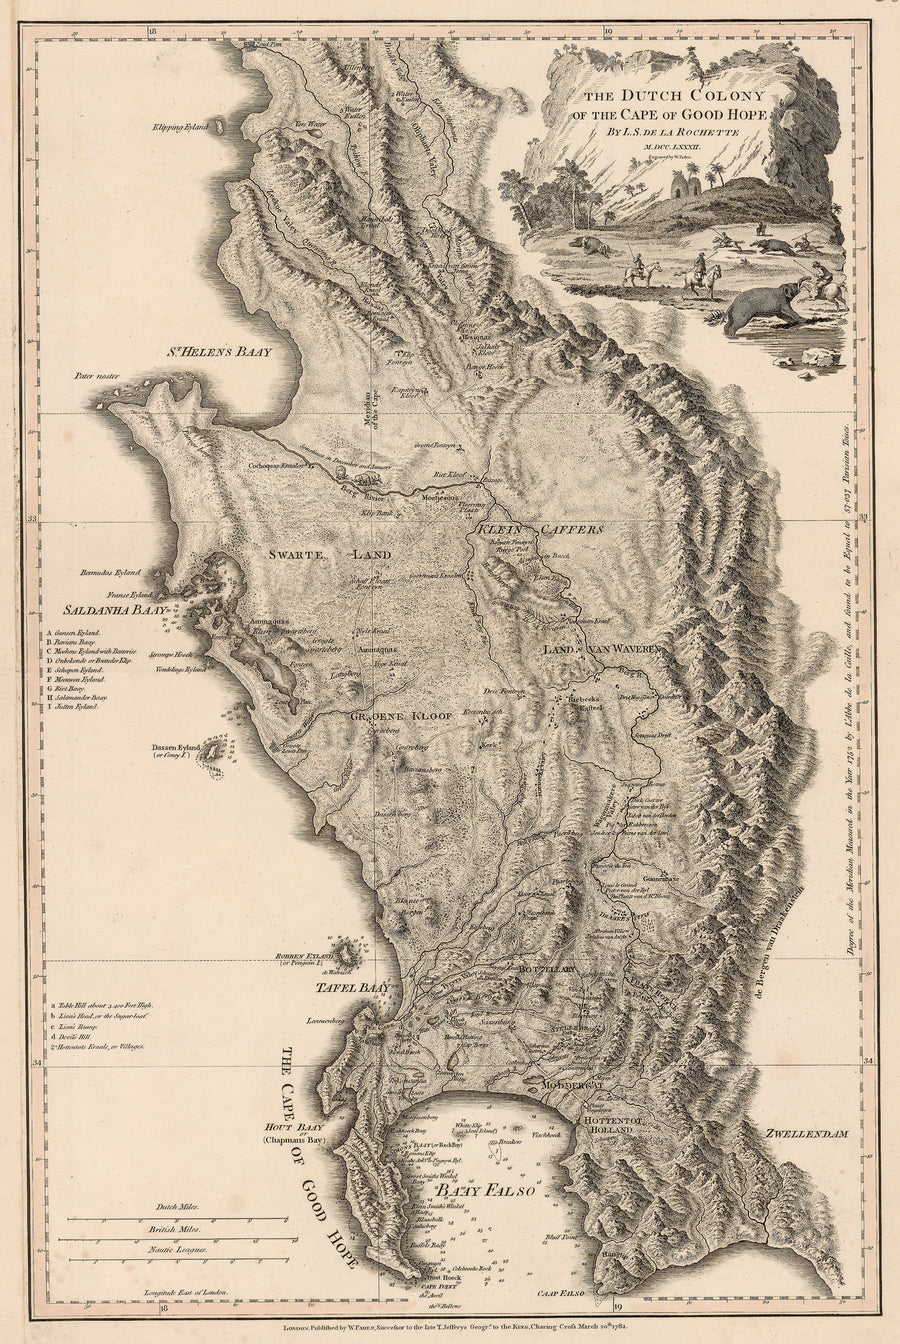 1782 The Dutch Colony of the Cape of Good Hope